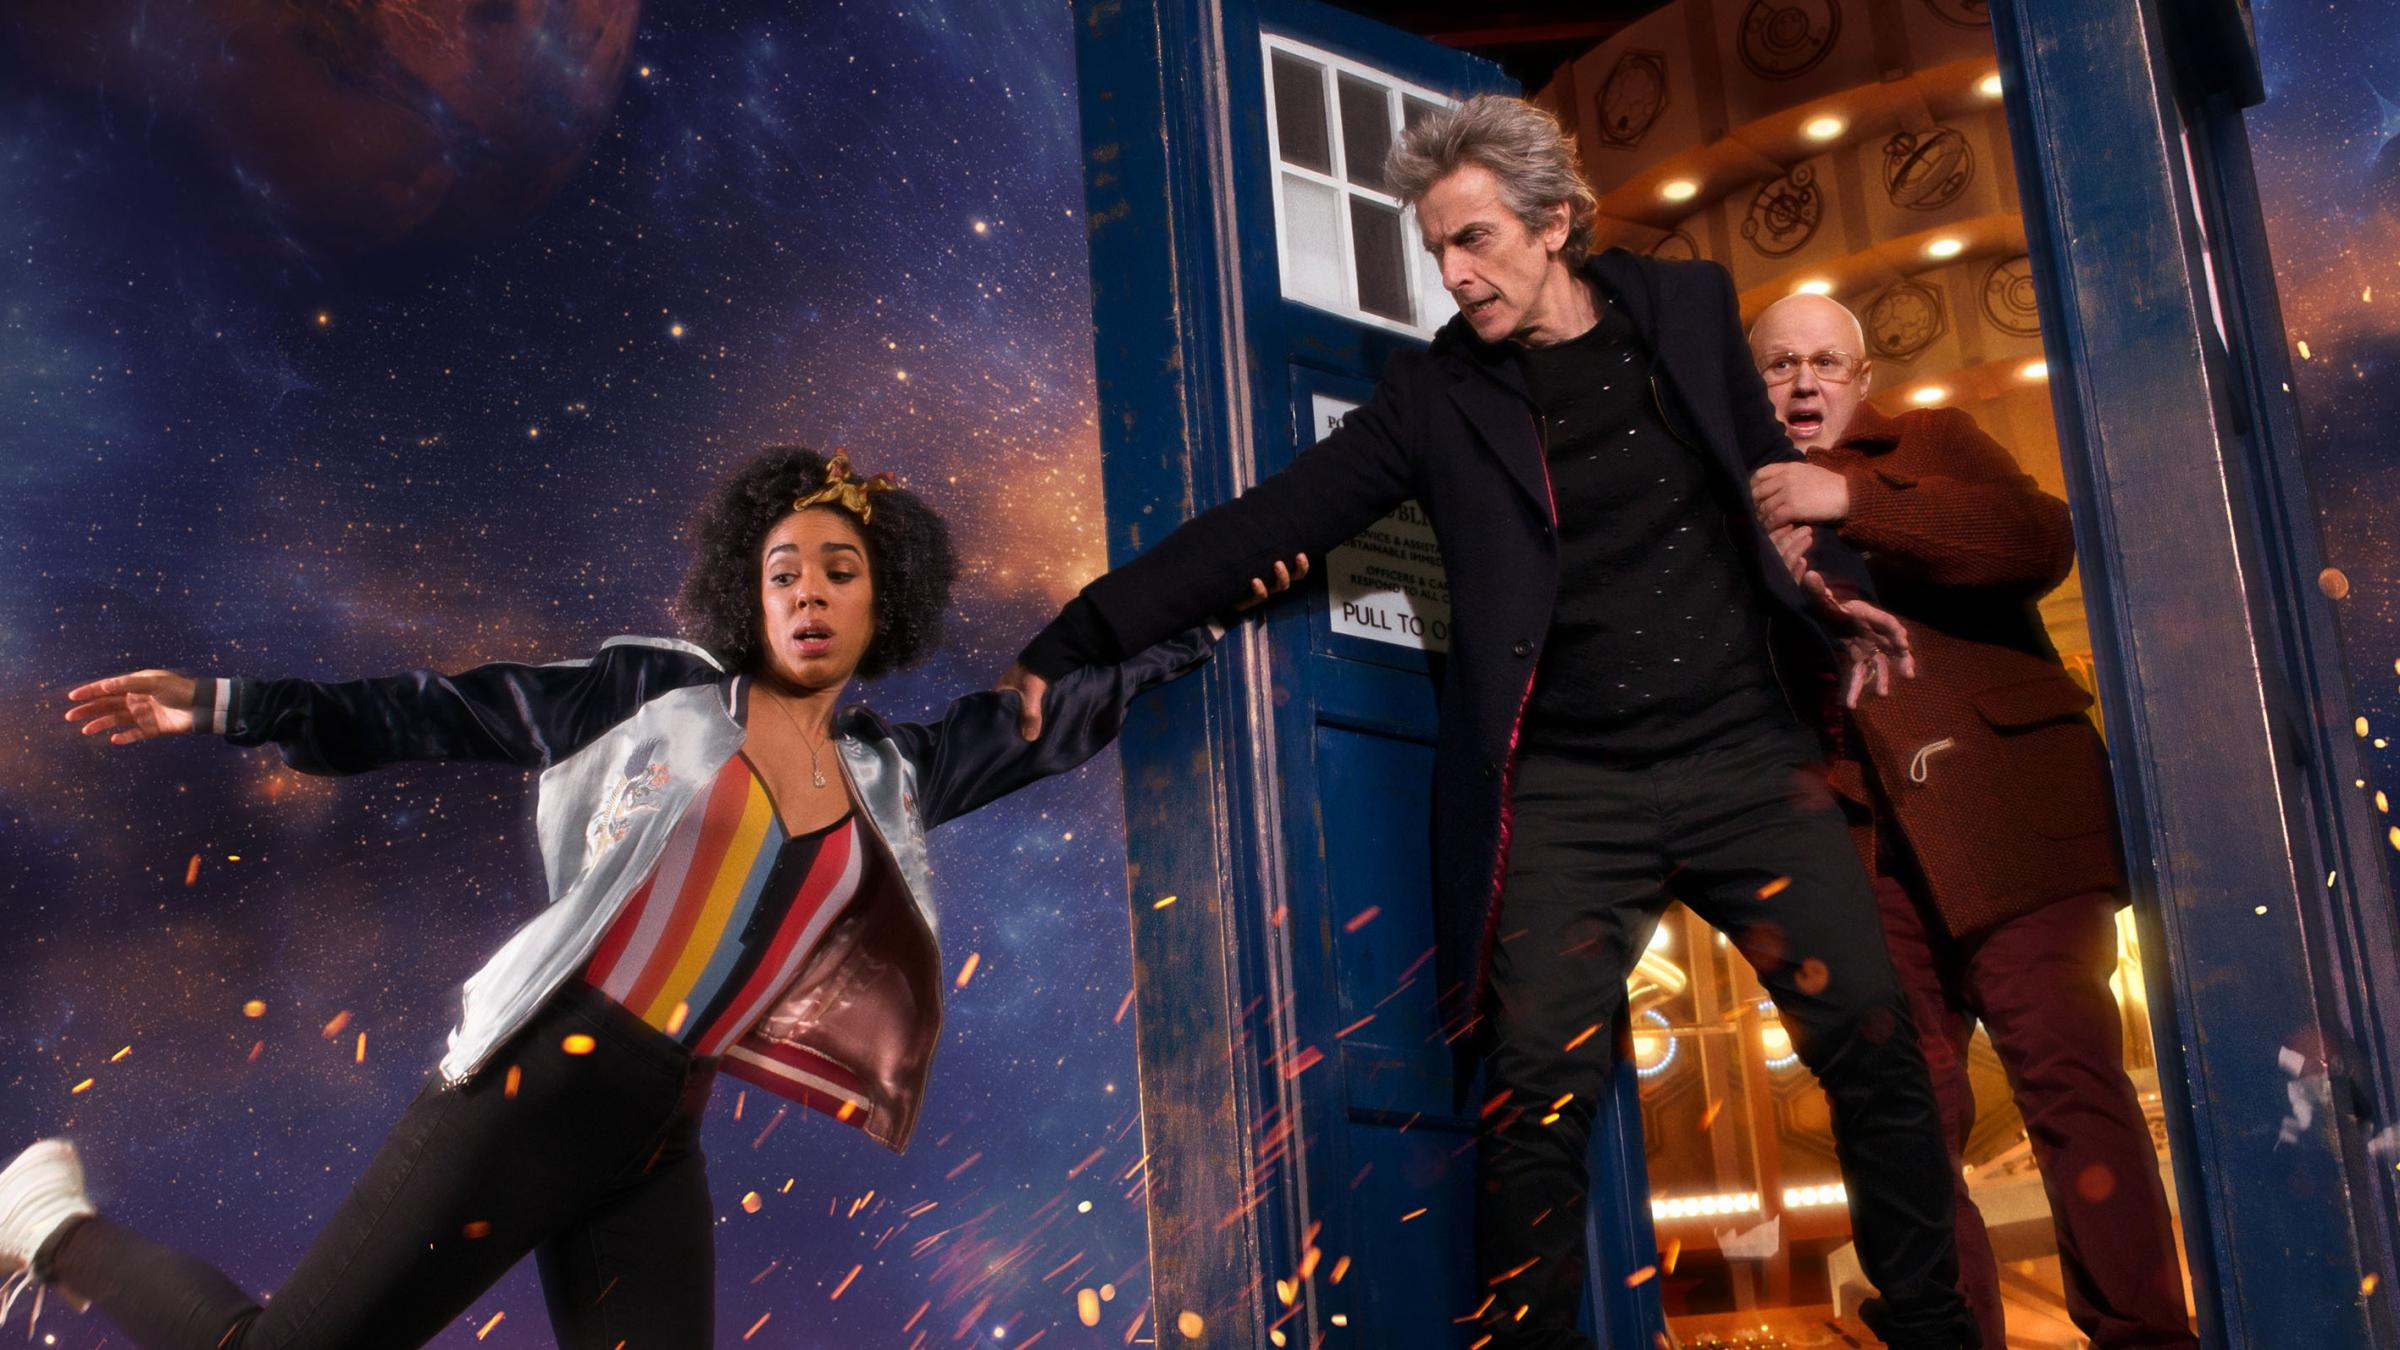 the relationship of the doctor with his companion in the television series doctor who 'family' is the watchword for the chris chibnall era family' the watchword for his debut series editor for news of the doctor who companion.